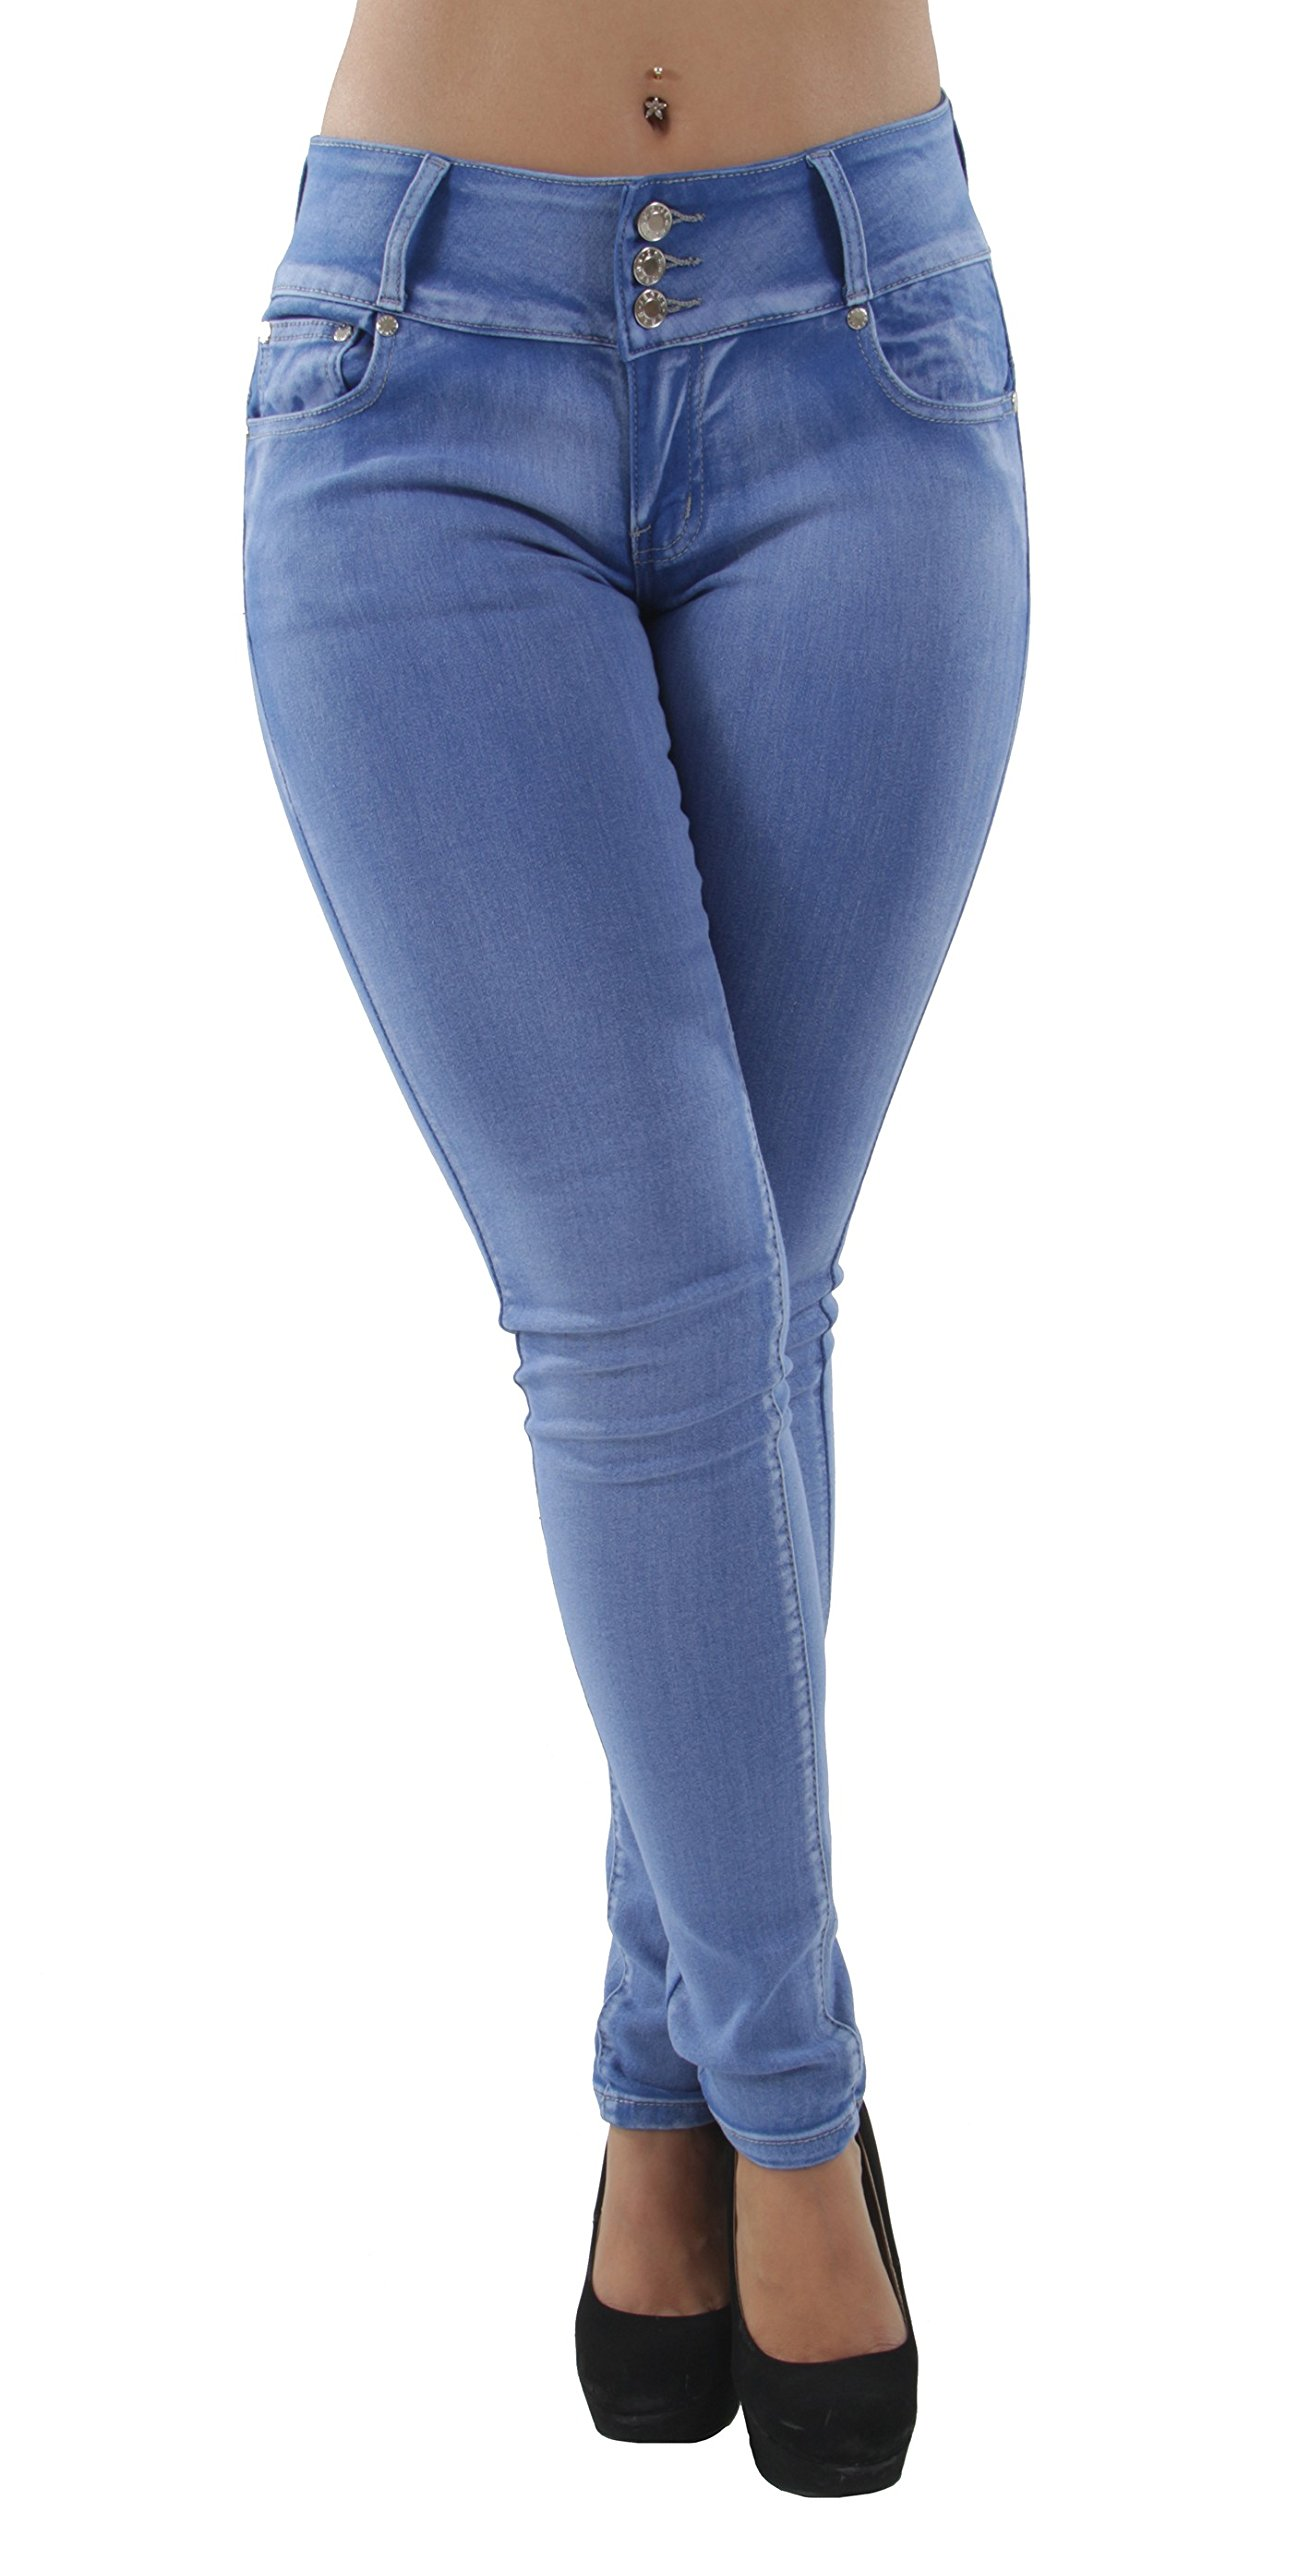 Fashion2Love H1722P - Colombian Design, Butt Lift, Push up, Mid Waist, Skinny Jeans in Washed Light Blue Size 13